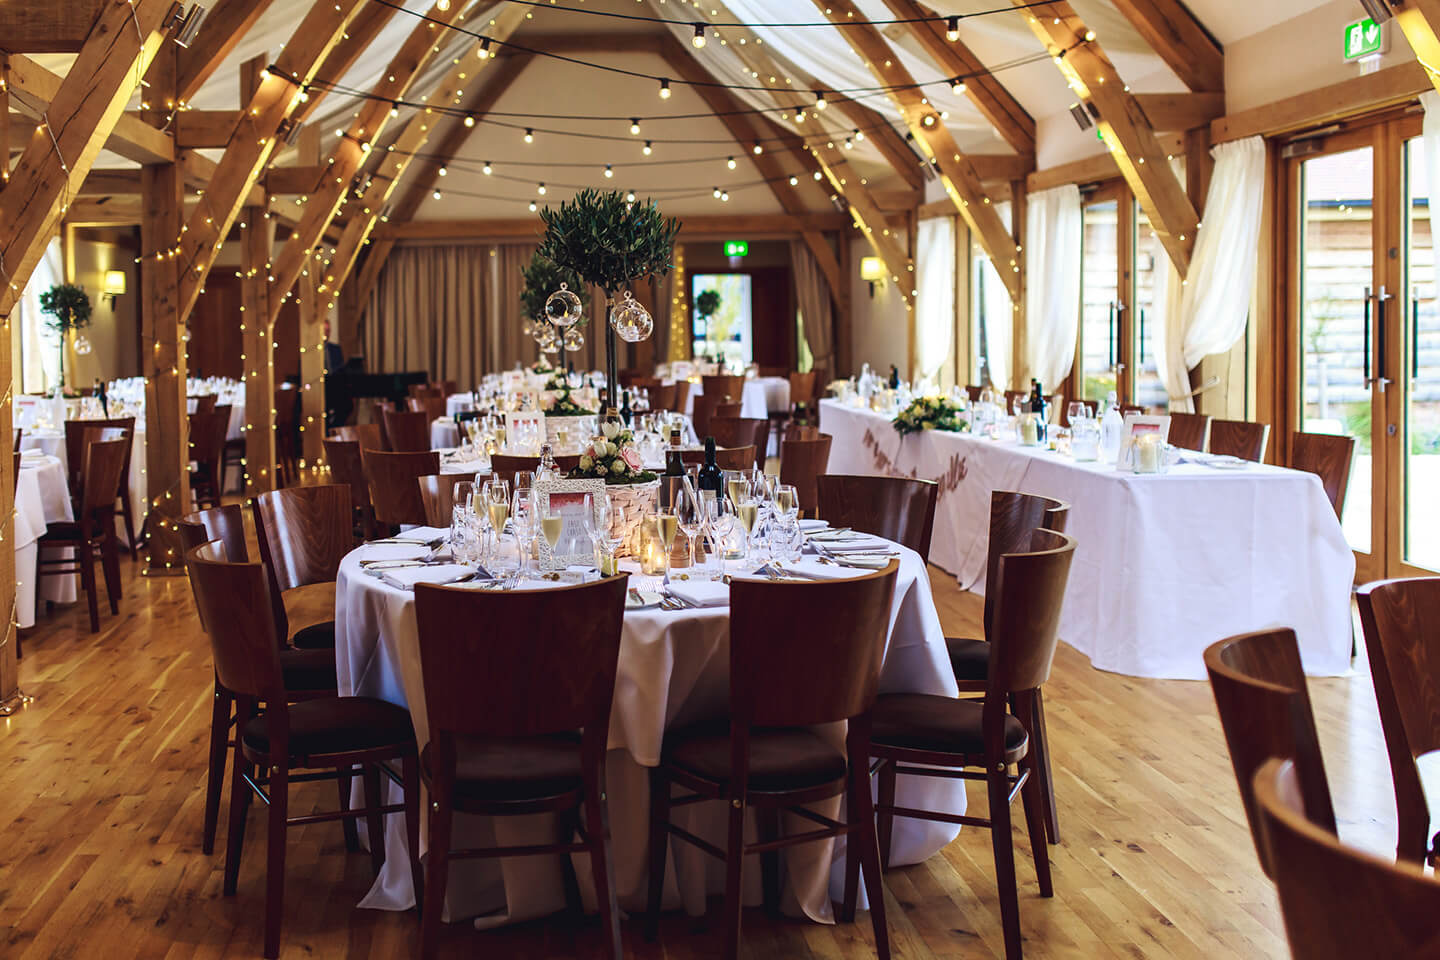 The Bridge Barn is dressed for an autumn wedding breakfast with fairylights and greenery